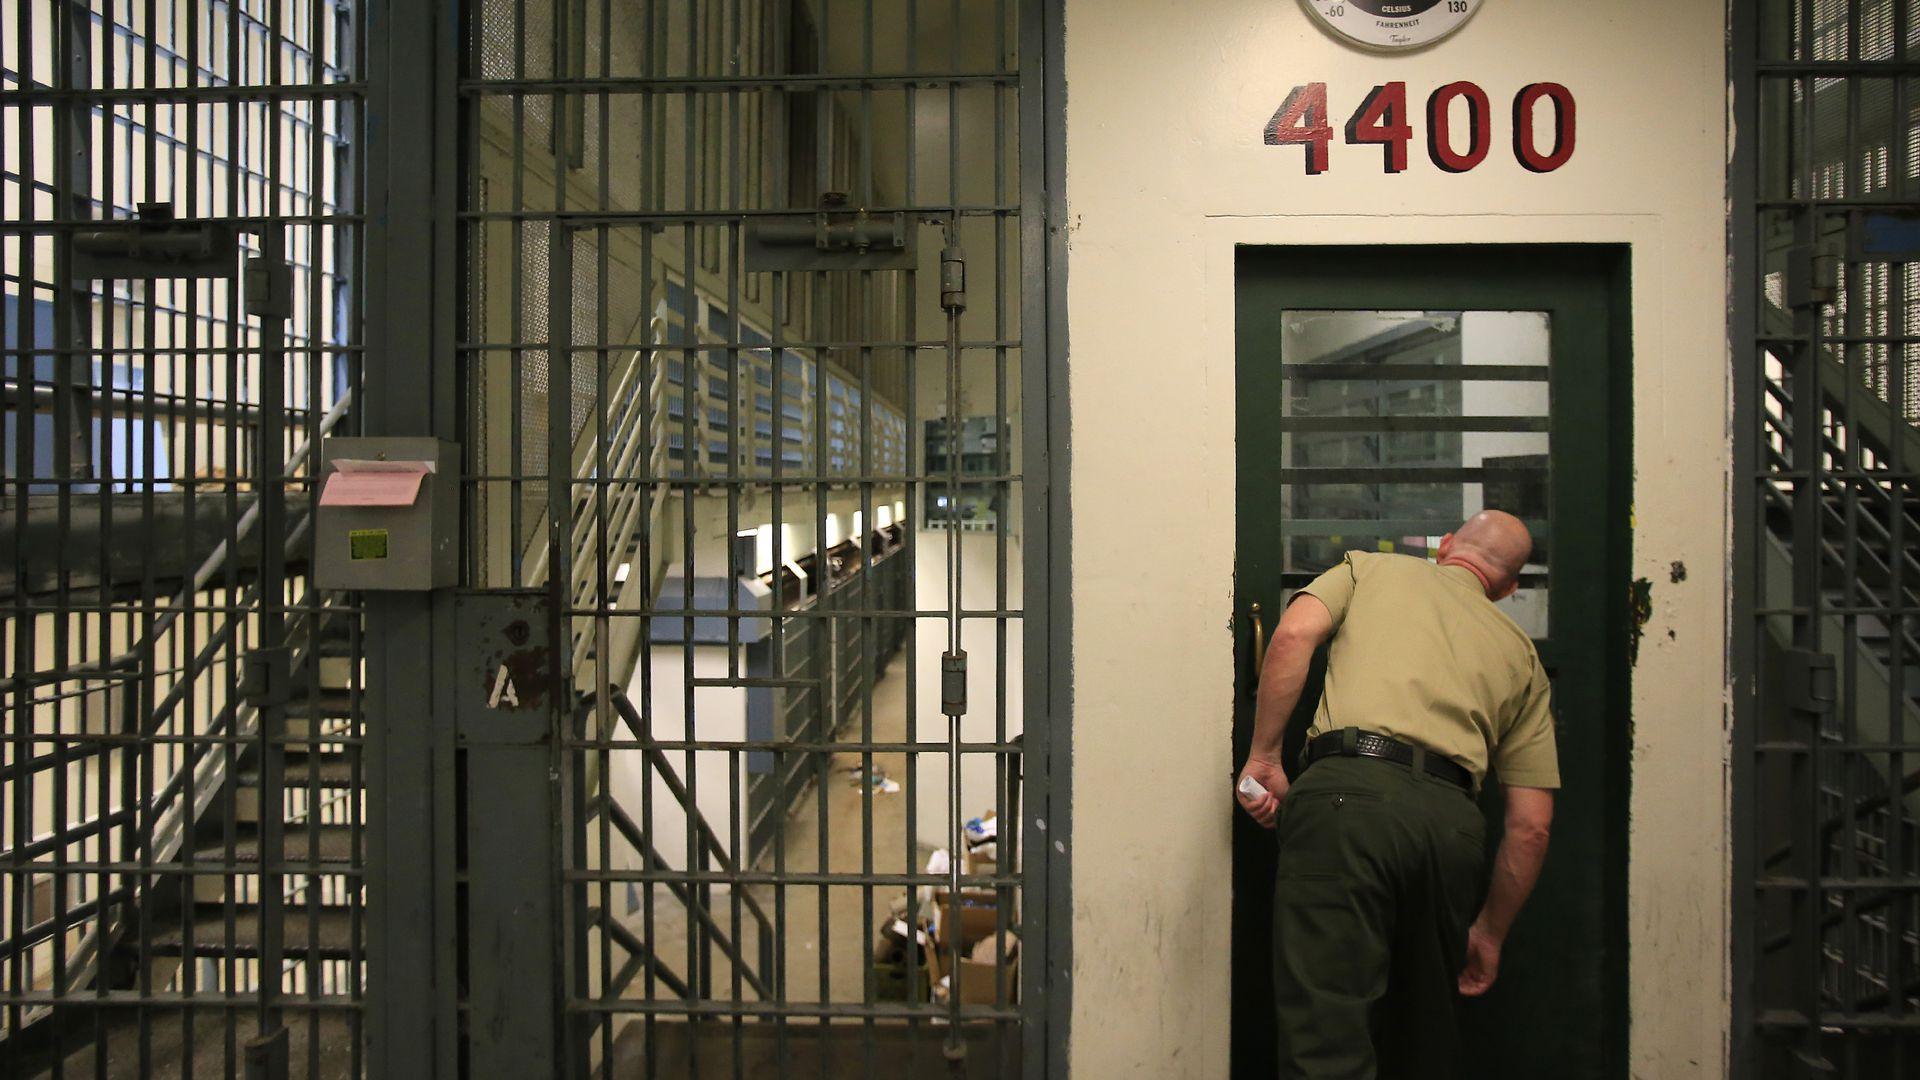 A sheriff peers into jail cells.